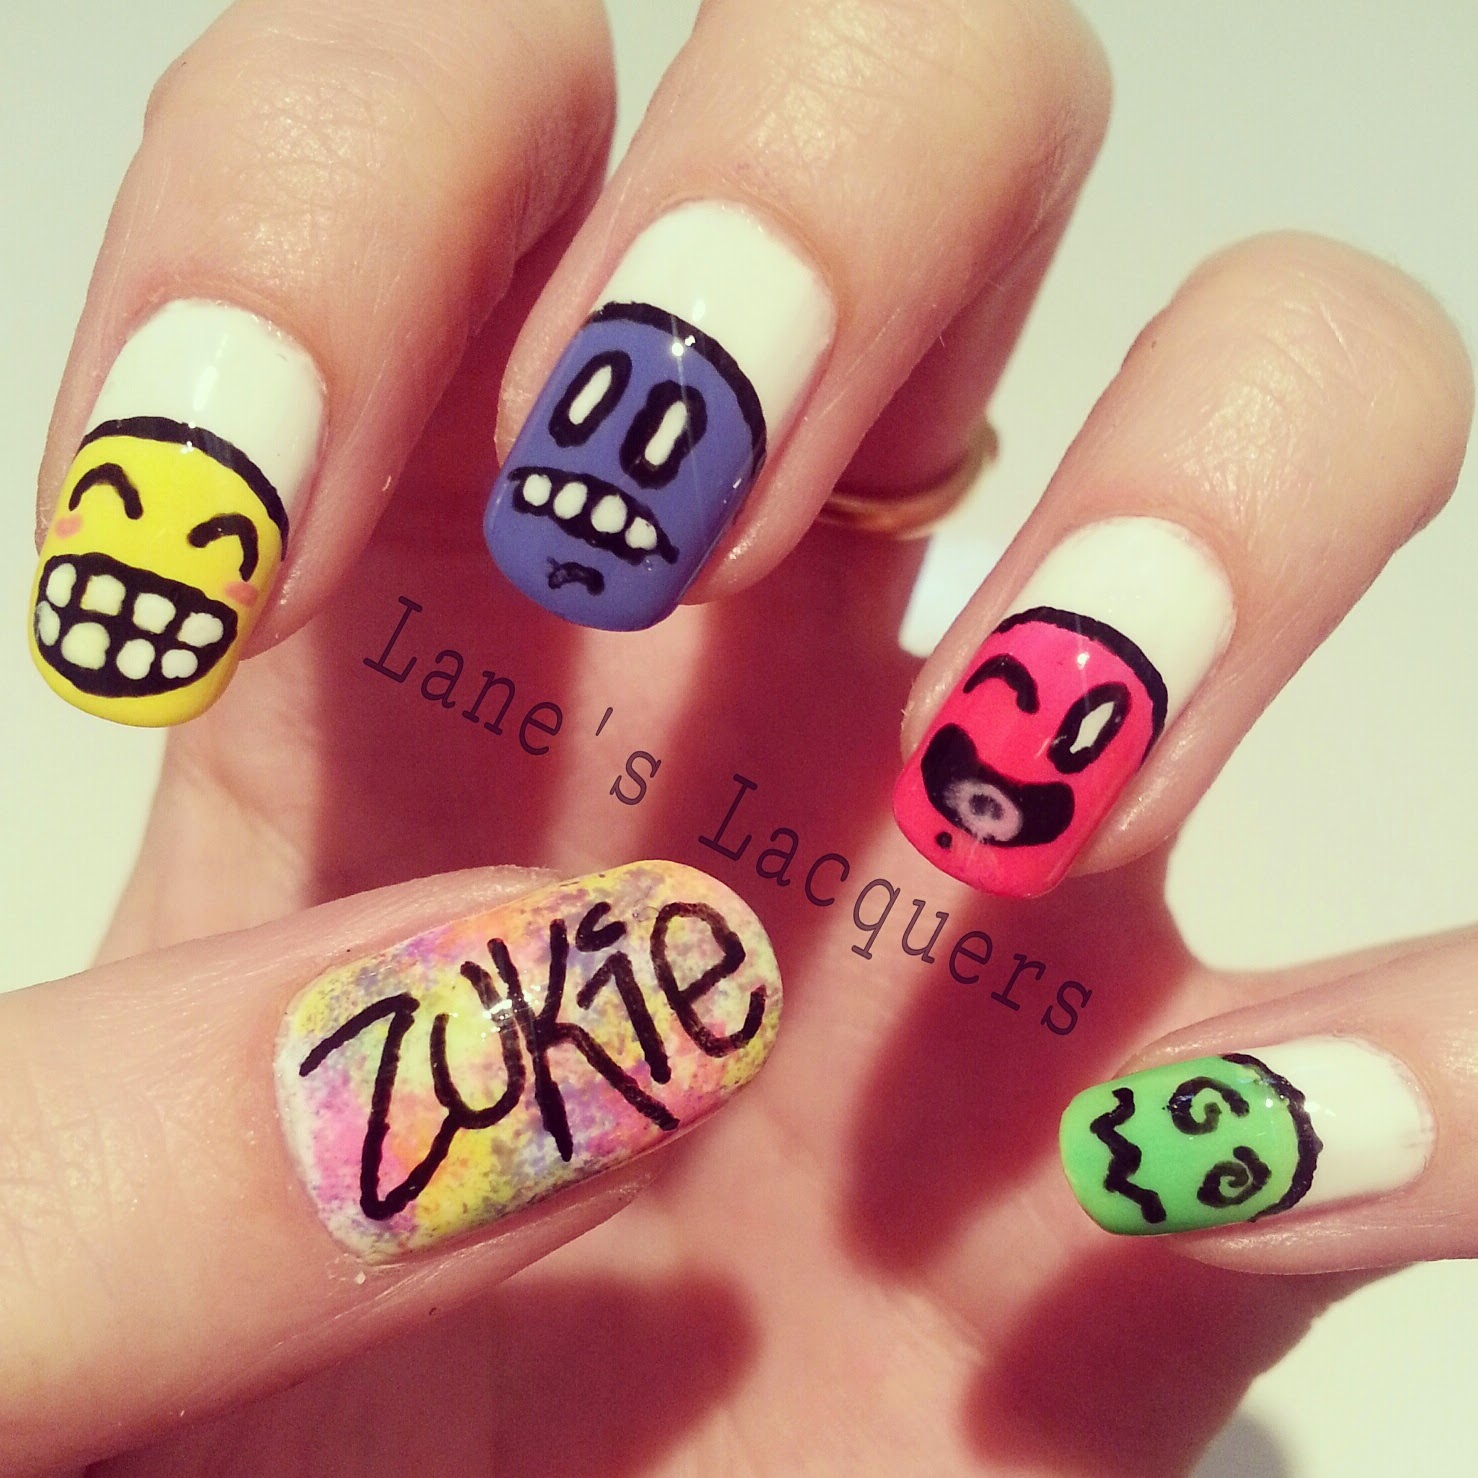 zukie-art-barry-m-freehand-nail-art